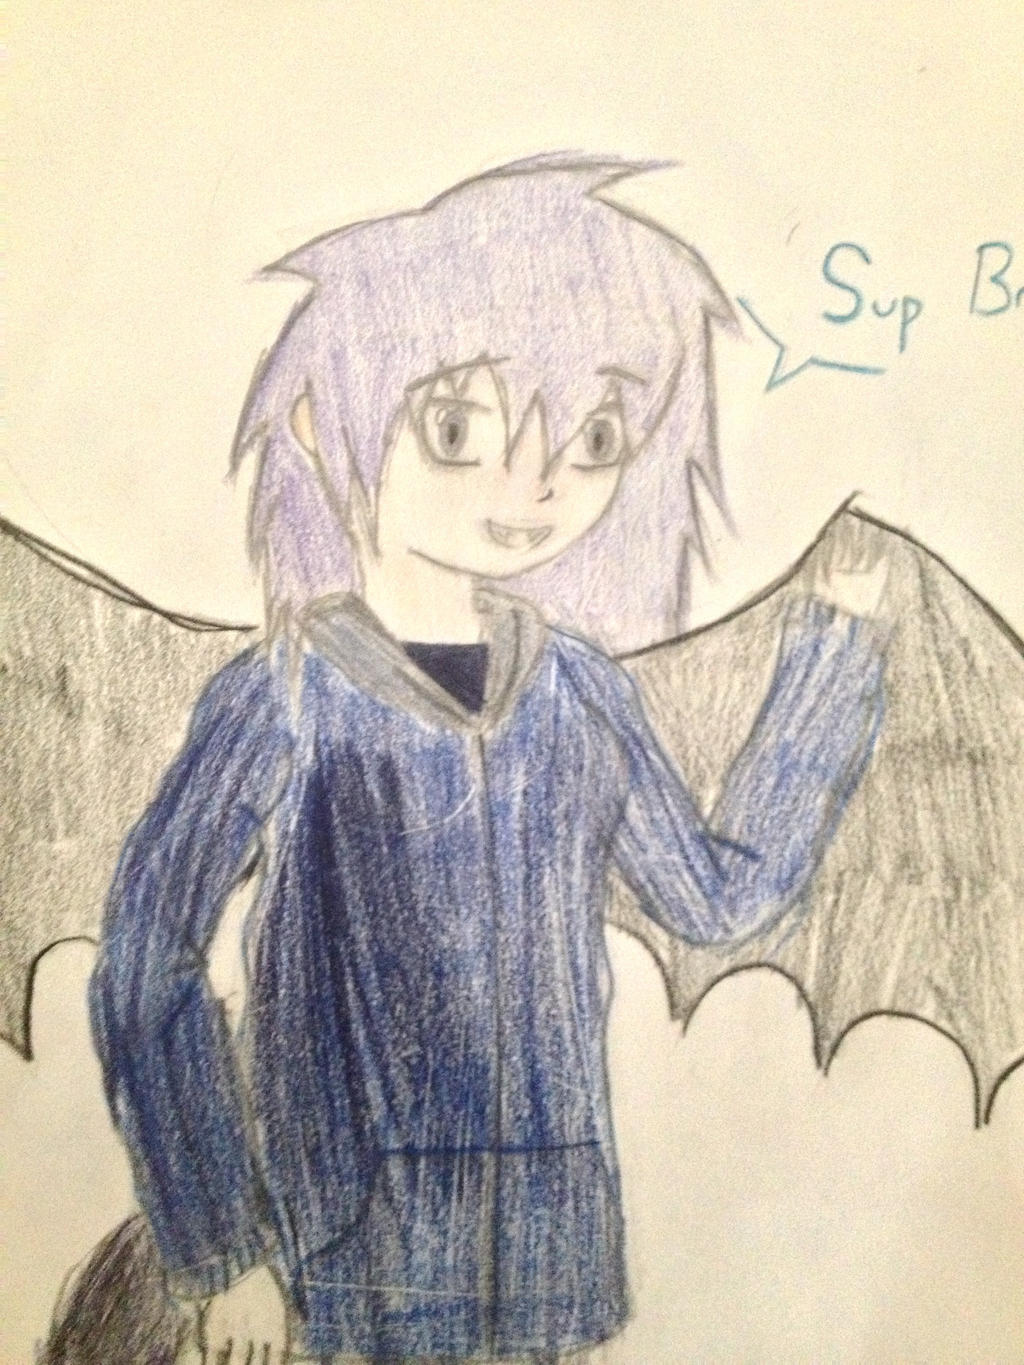 'Sup Bro's! ( sorry for crappy coloring XD) by SHADOW-HEART130